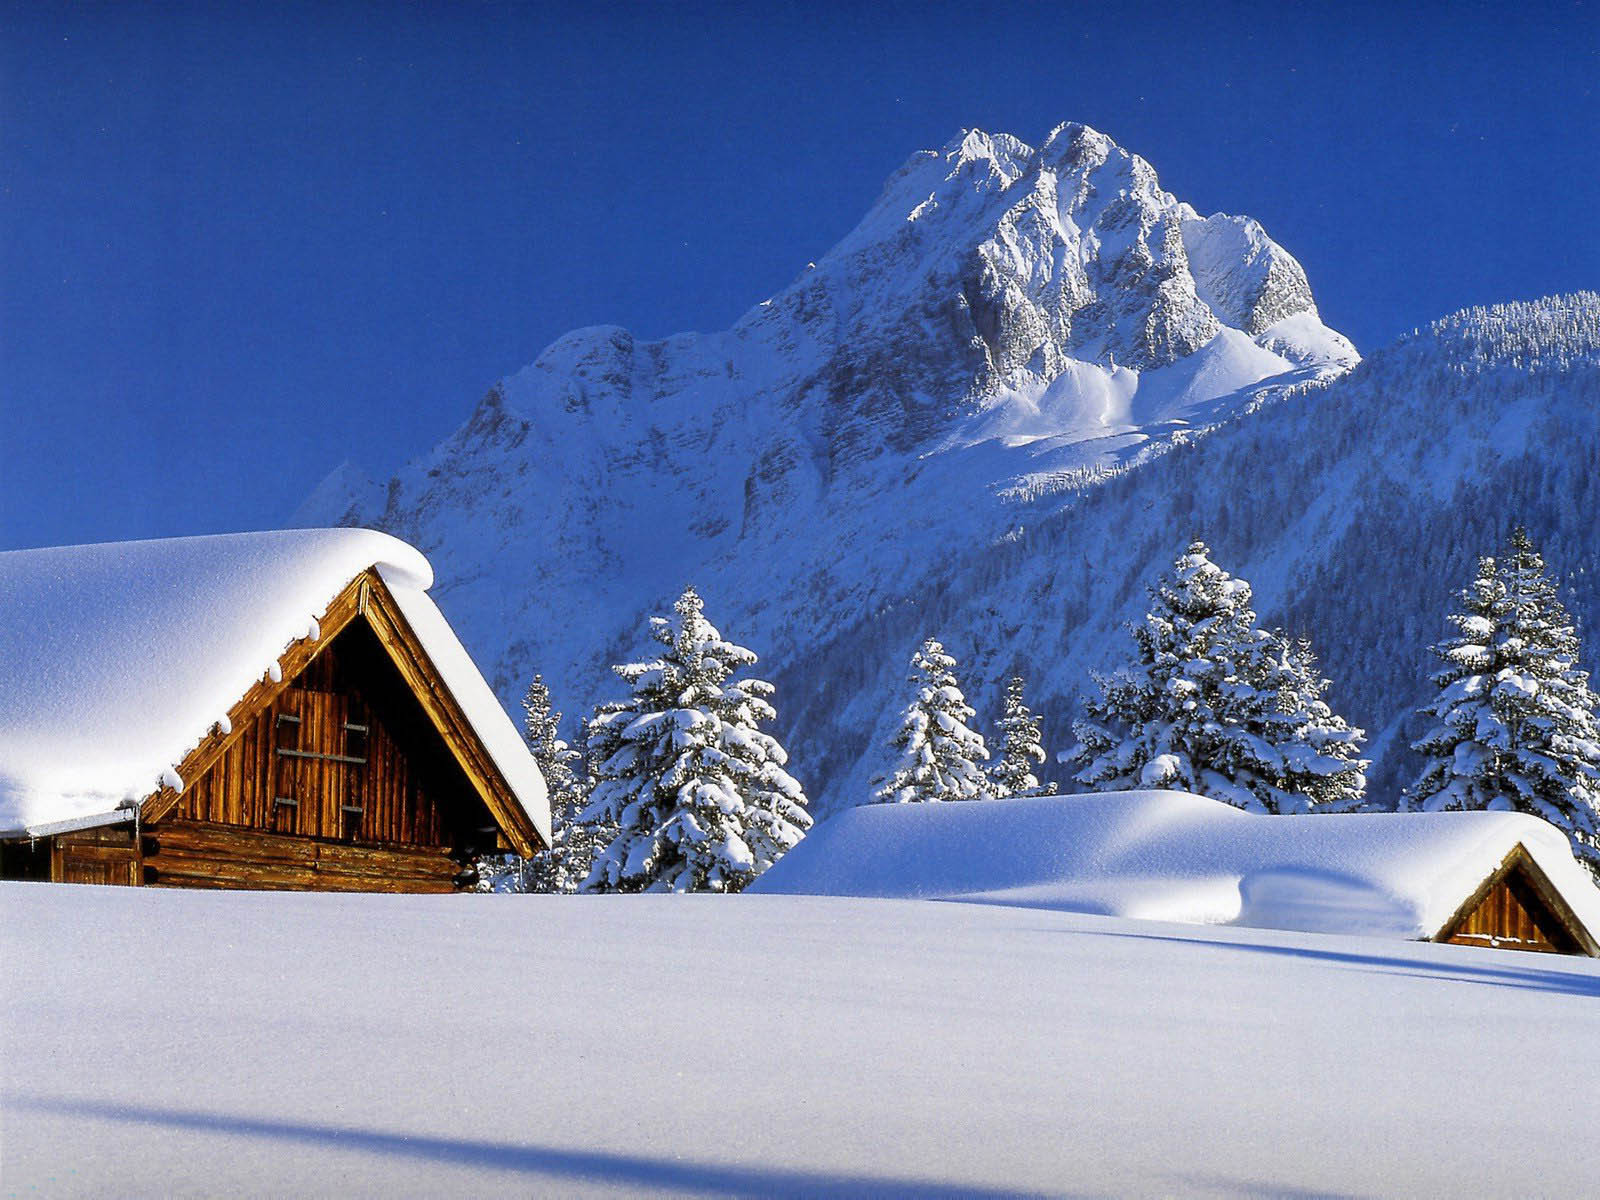 Gallery Mangklex: Snow Desktop Wallpapers and Backgrounds 2013 wallpapers